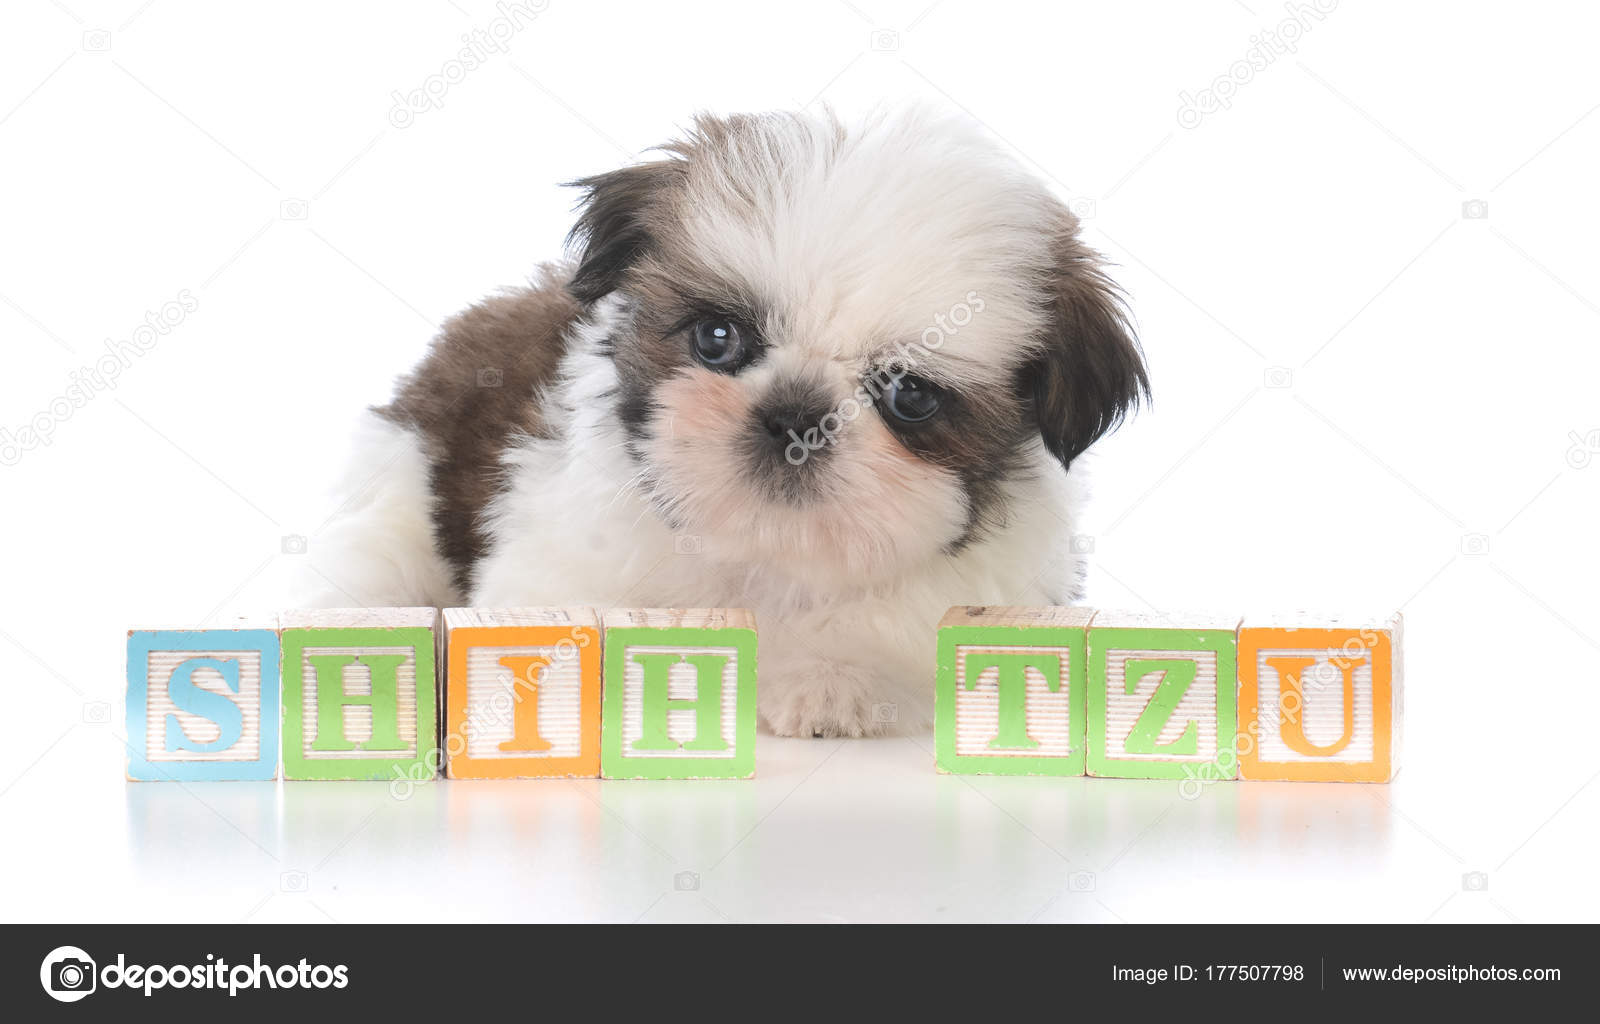 Cute Shih Tzu Puppy With Block Letters Stock Photo Willeecole